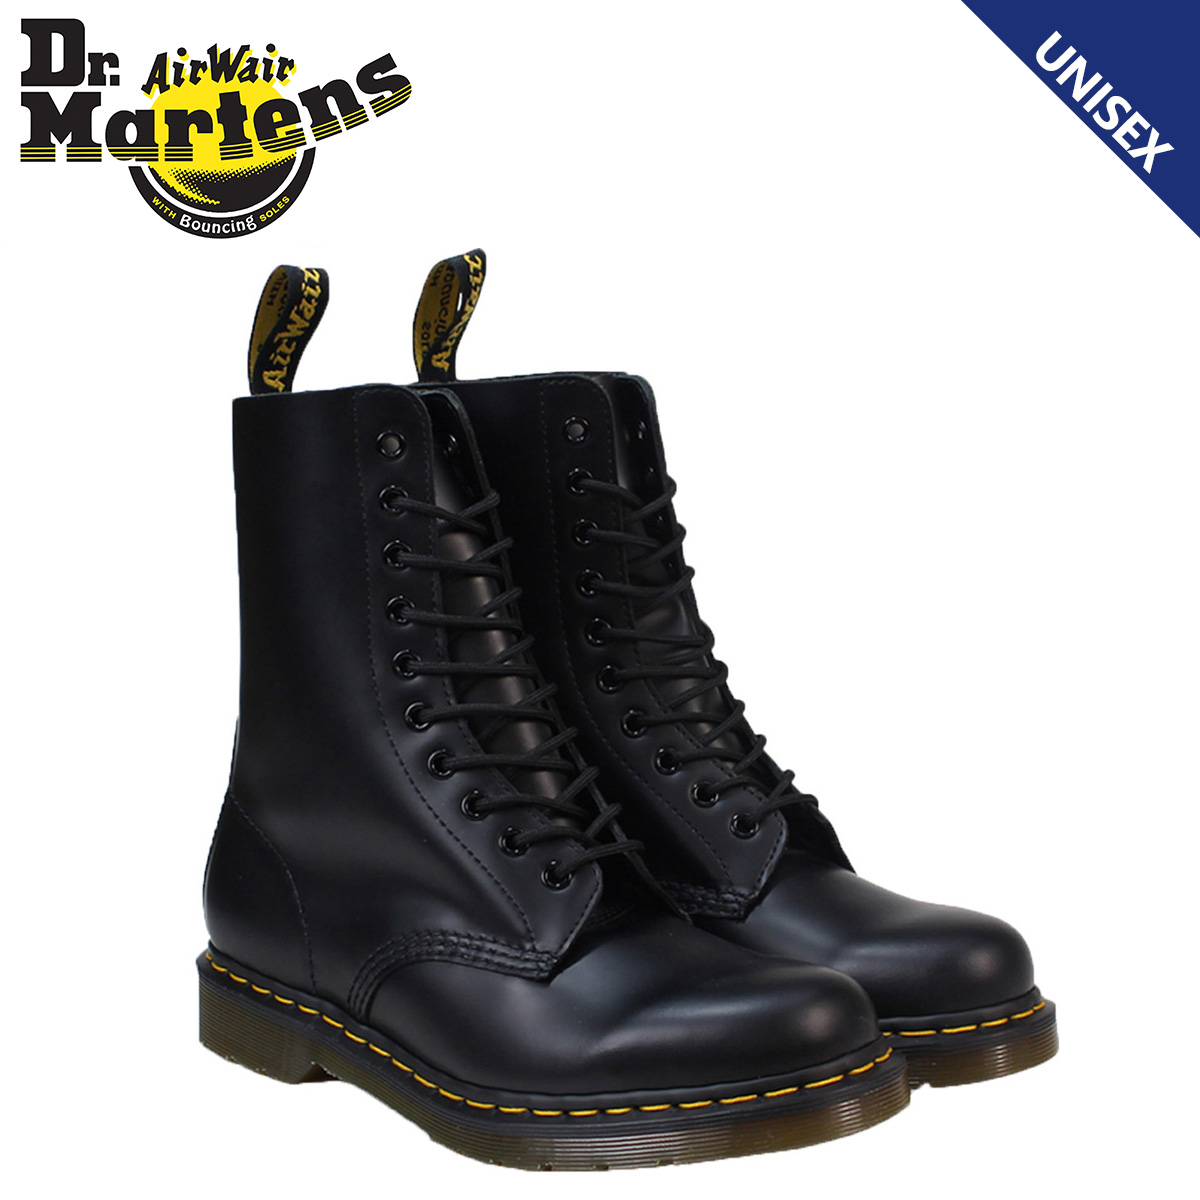 Dr. Martens Dr.Martens 10 hole boot R11857001 1490 leather men women